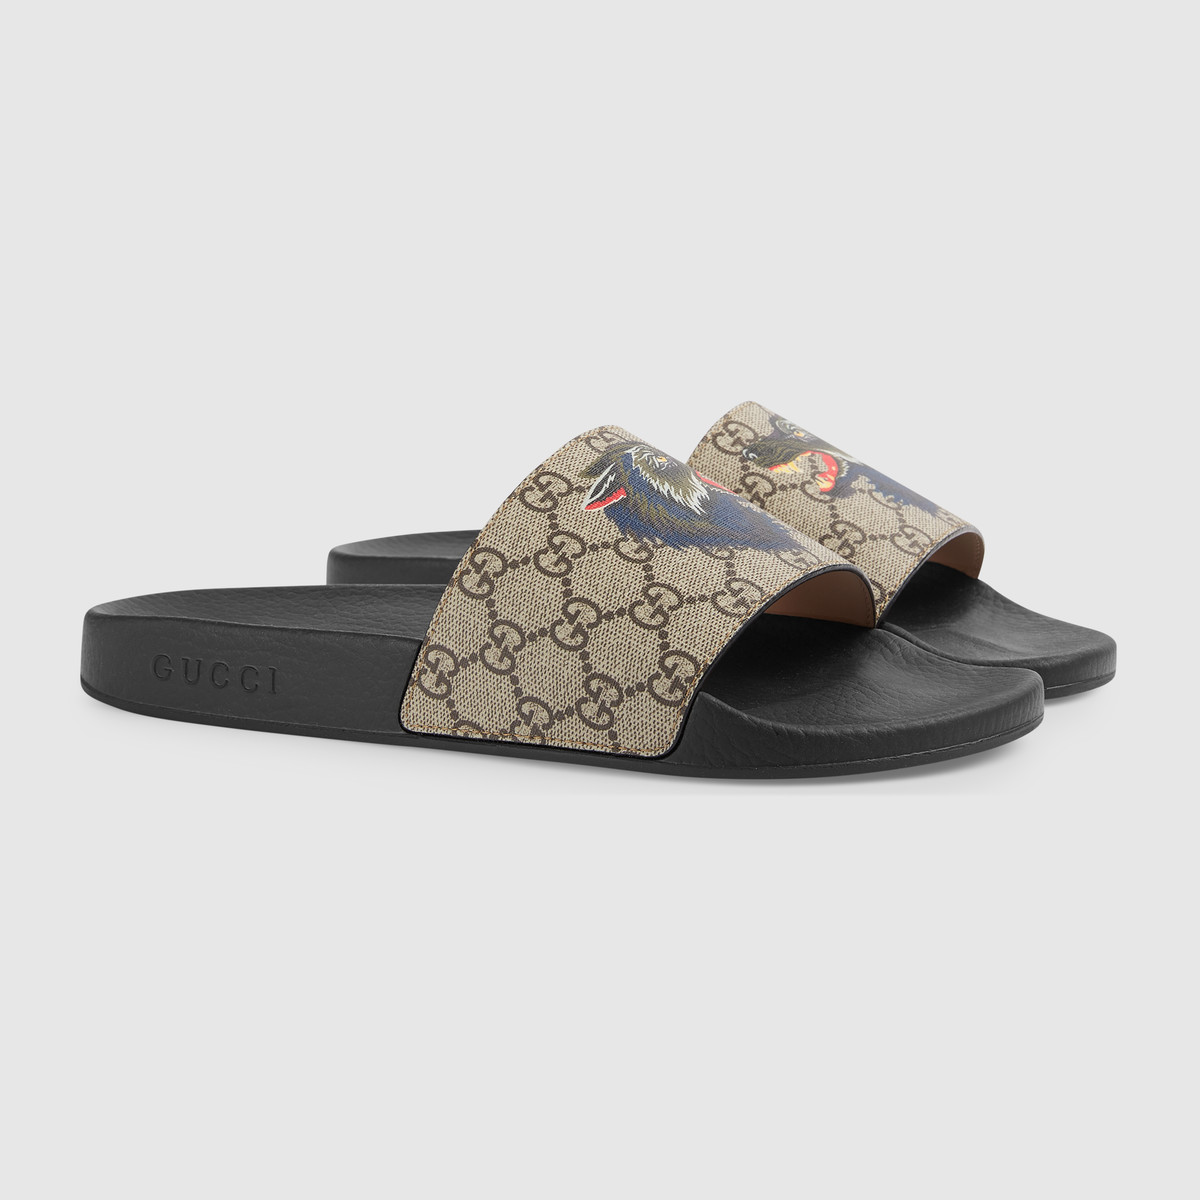 c1ff560df75ff Gucci GG Supreme slide with wolf Size 10 - Slip Ons for Sale - Grailed